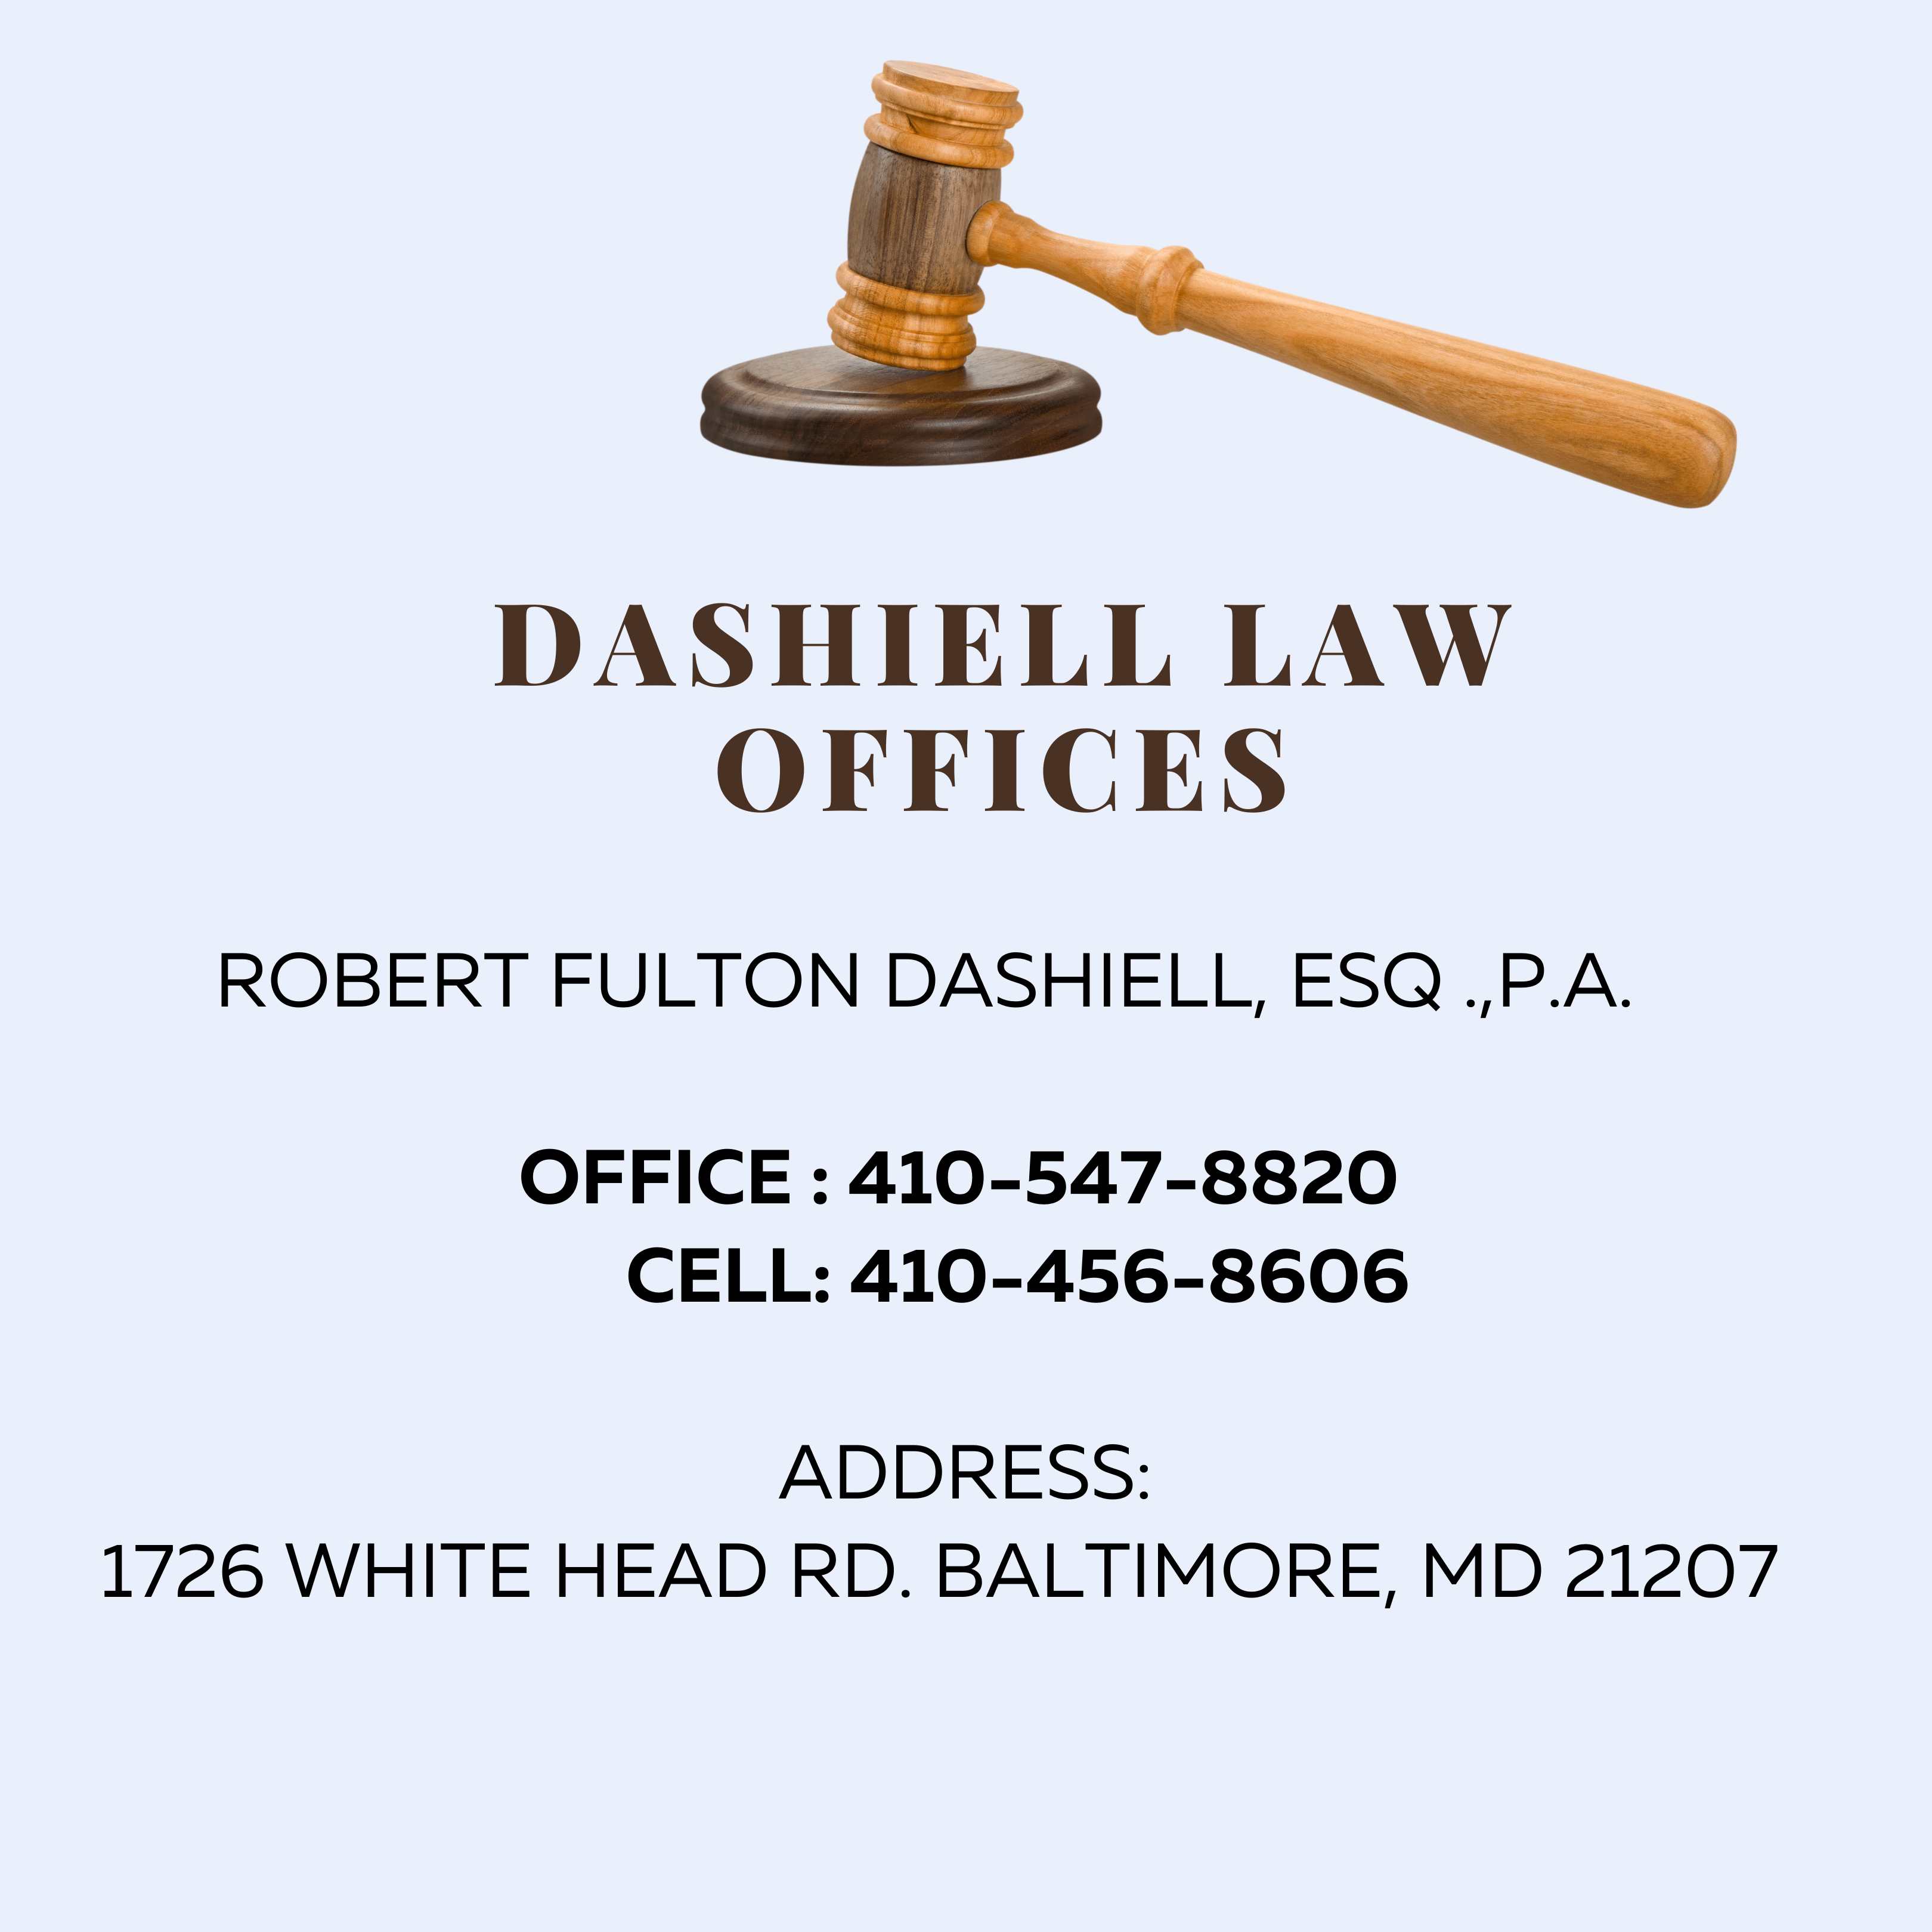 dashiell-law-offices-1.png